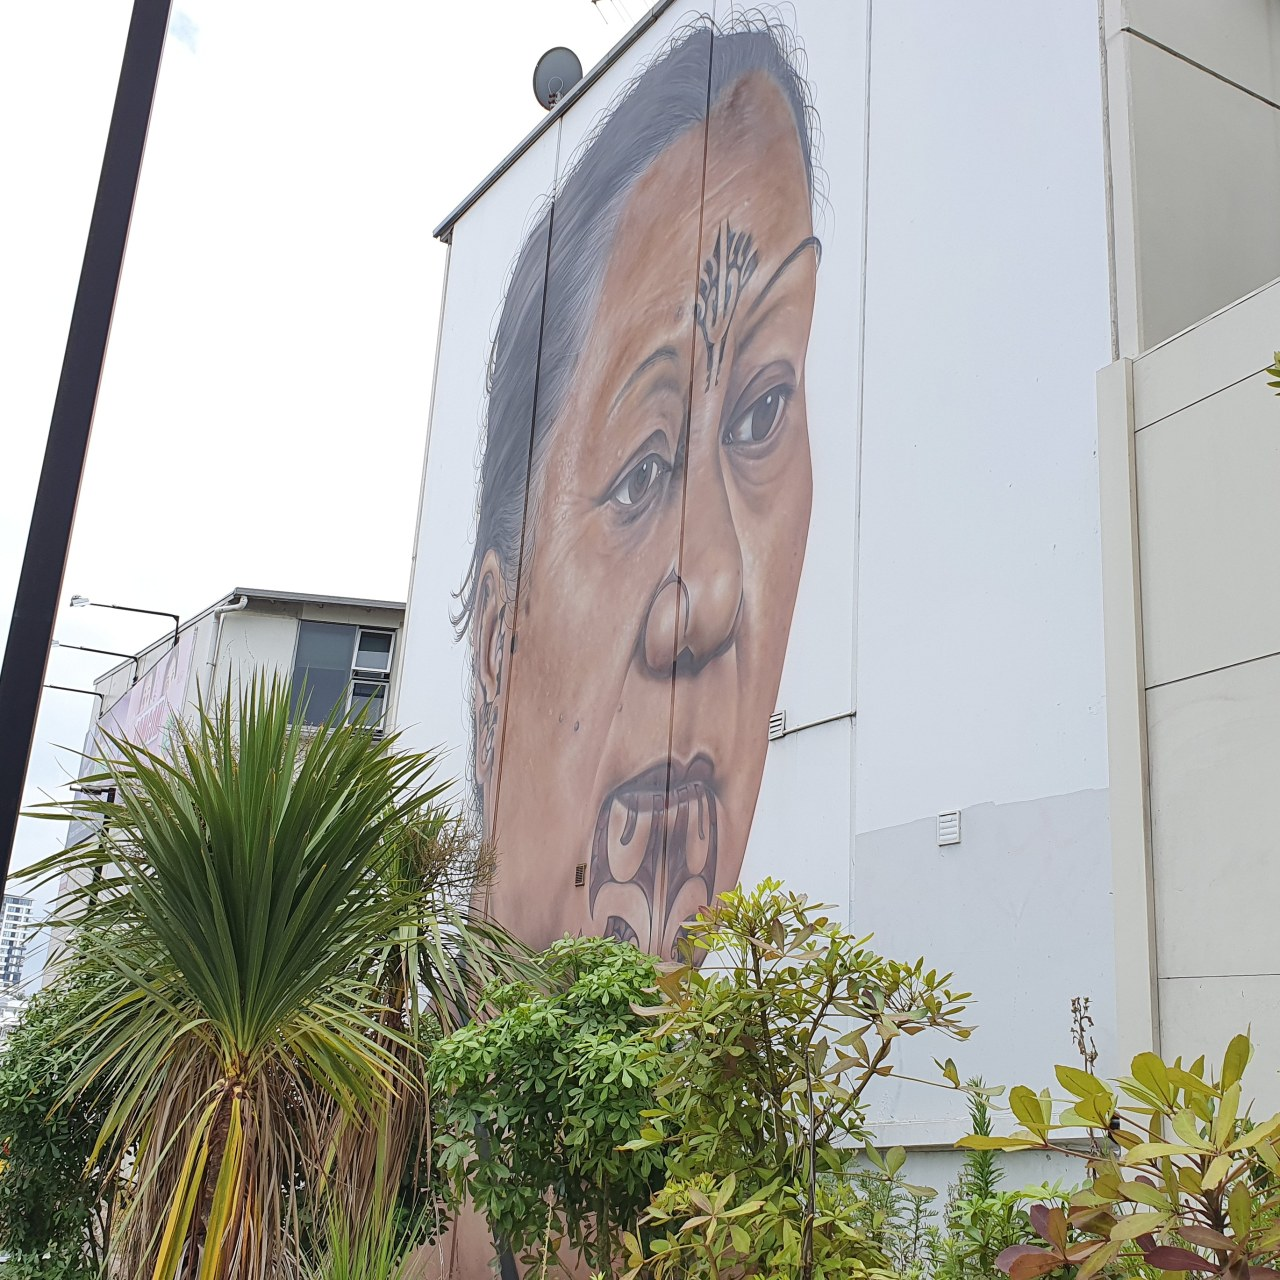 Day 89: Arrival into Auckland – an afternoon in a street art gallery